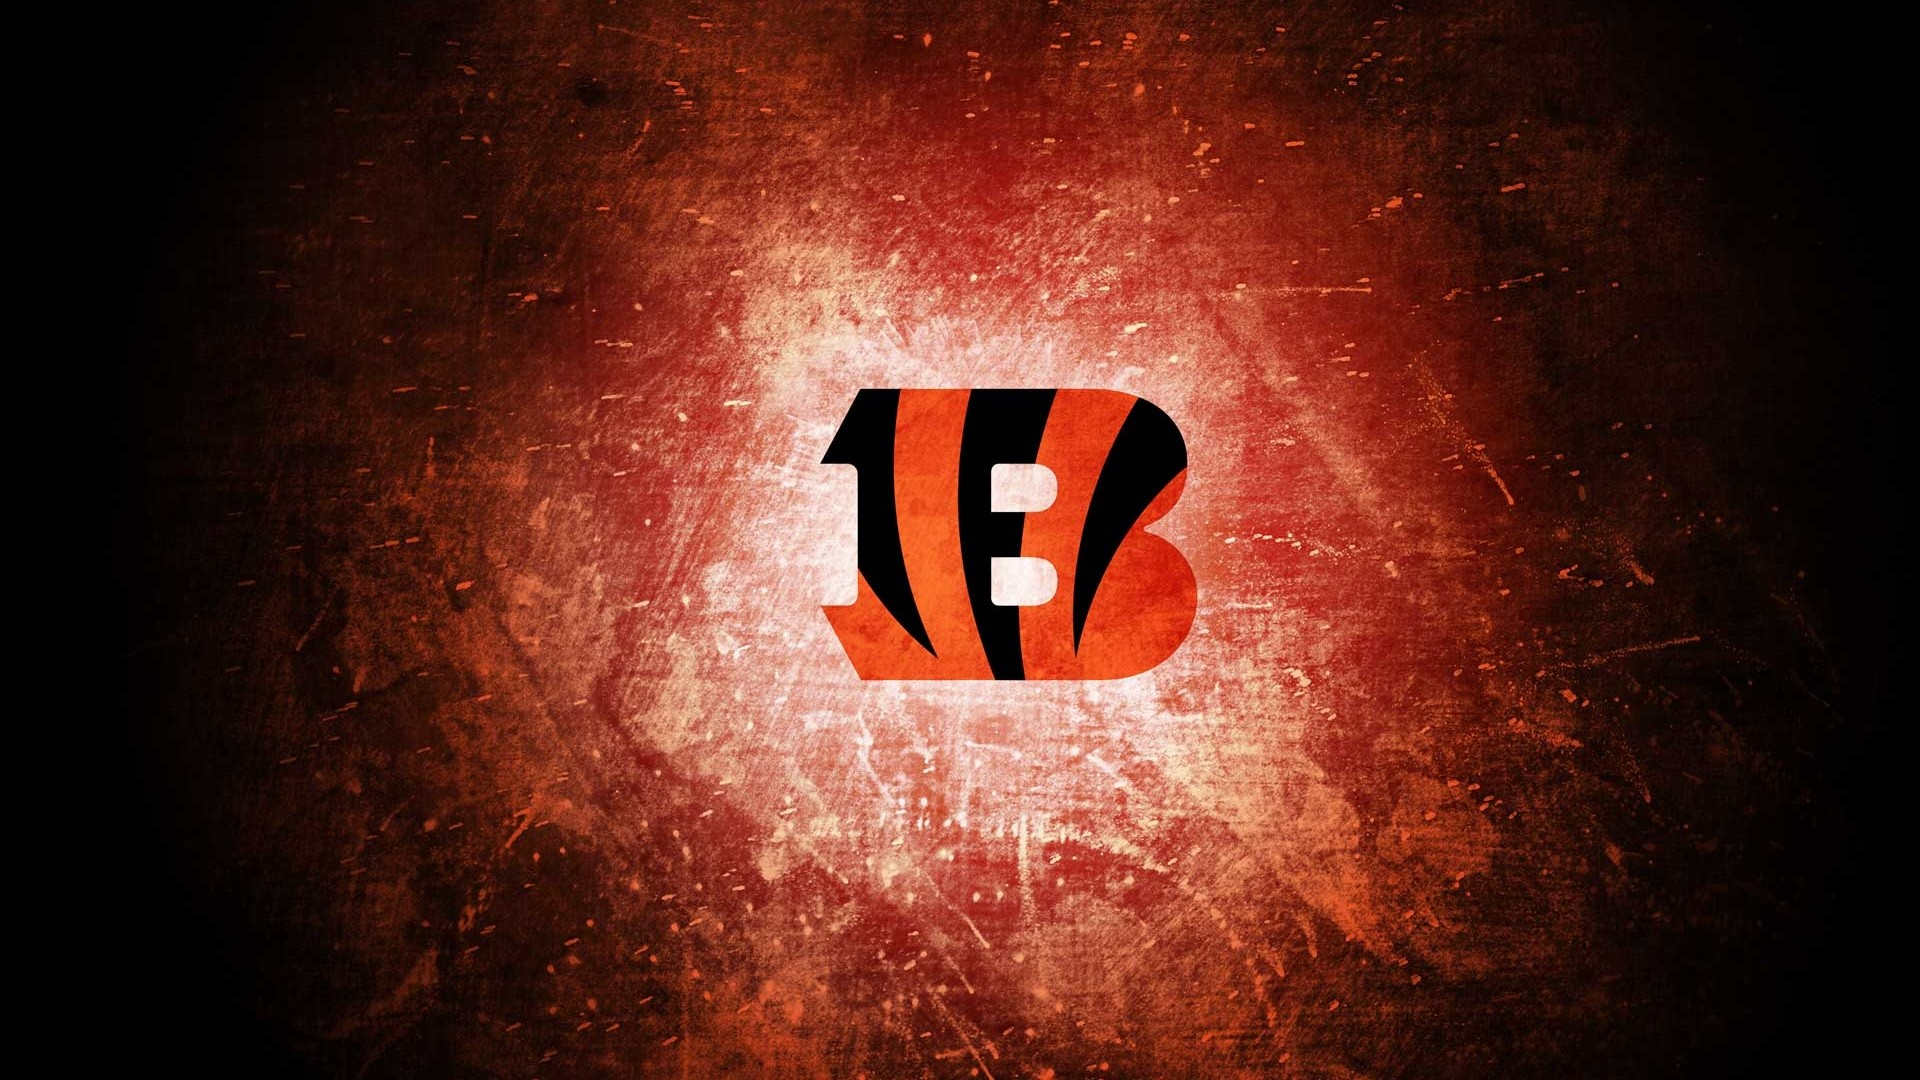 free images bengals logo wallpapers download high definiton wallpapers  windows 10 backgrounds 4k download wallpapers computer